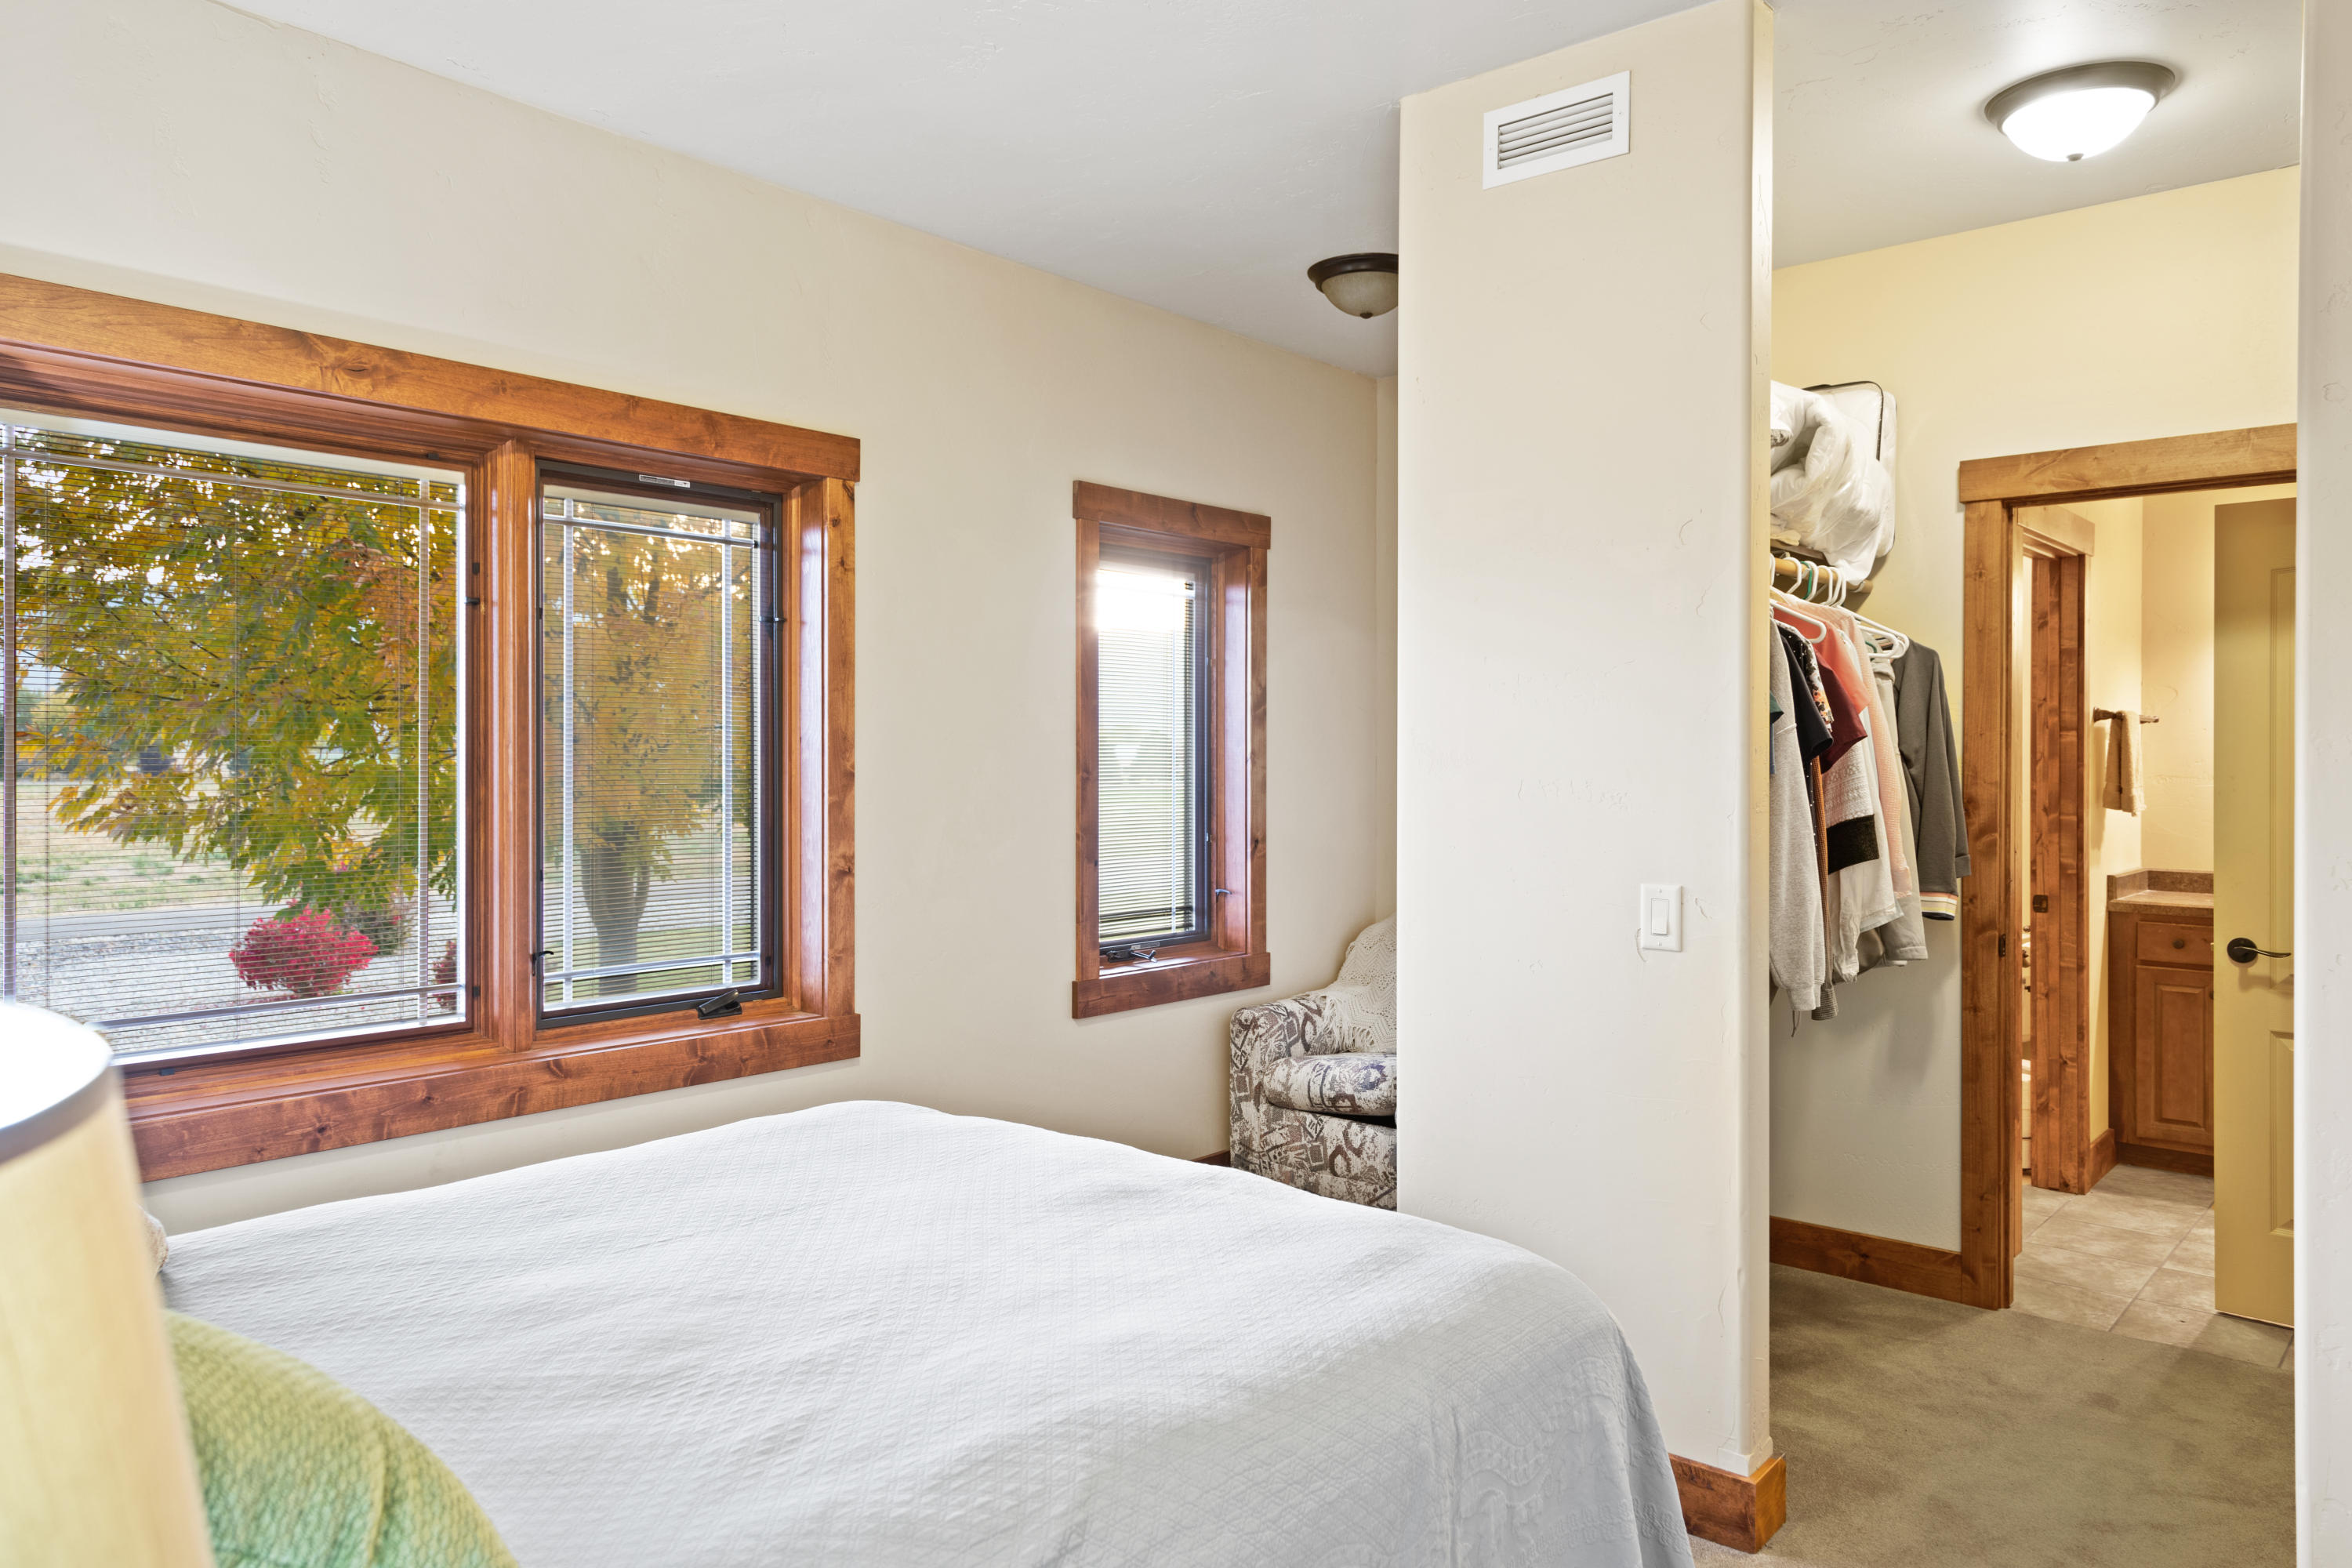 Guest Bed #2 and Closet